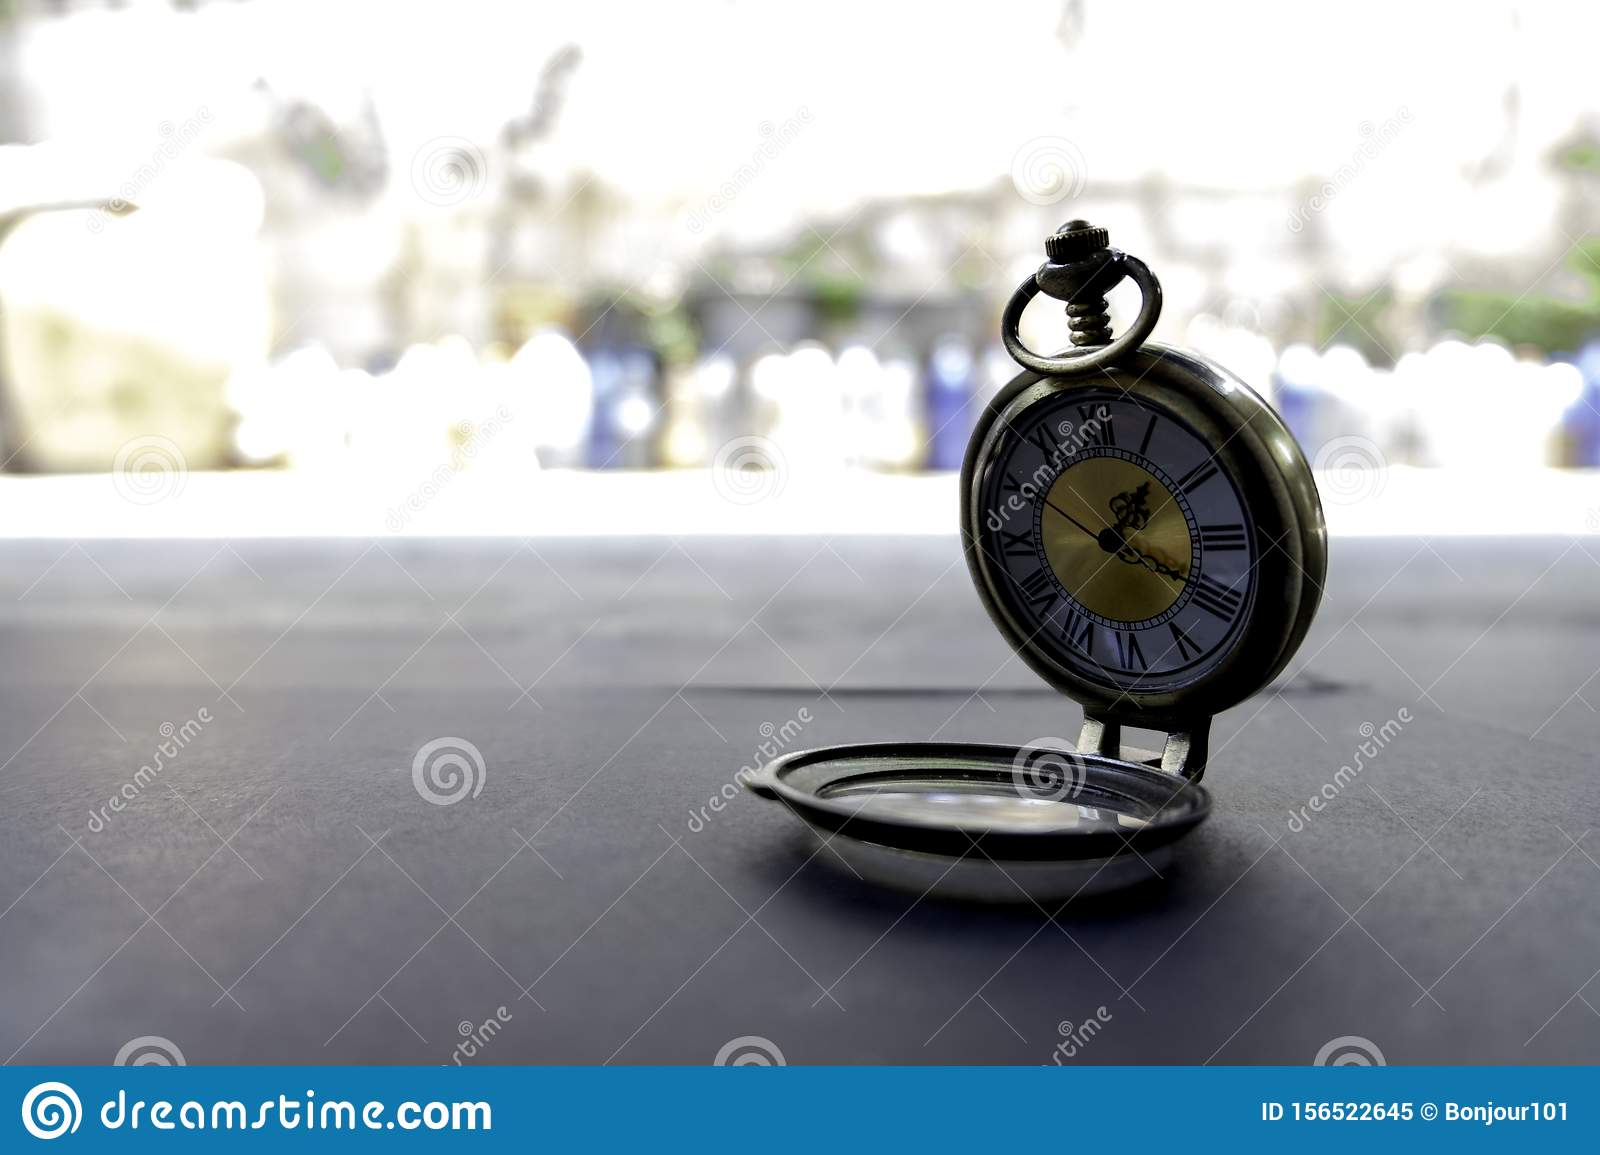 Necklace watches are located on black paper outside